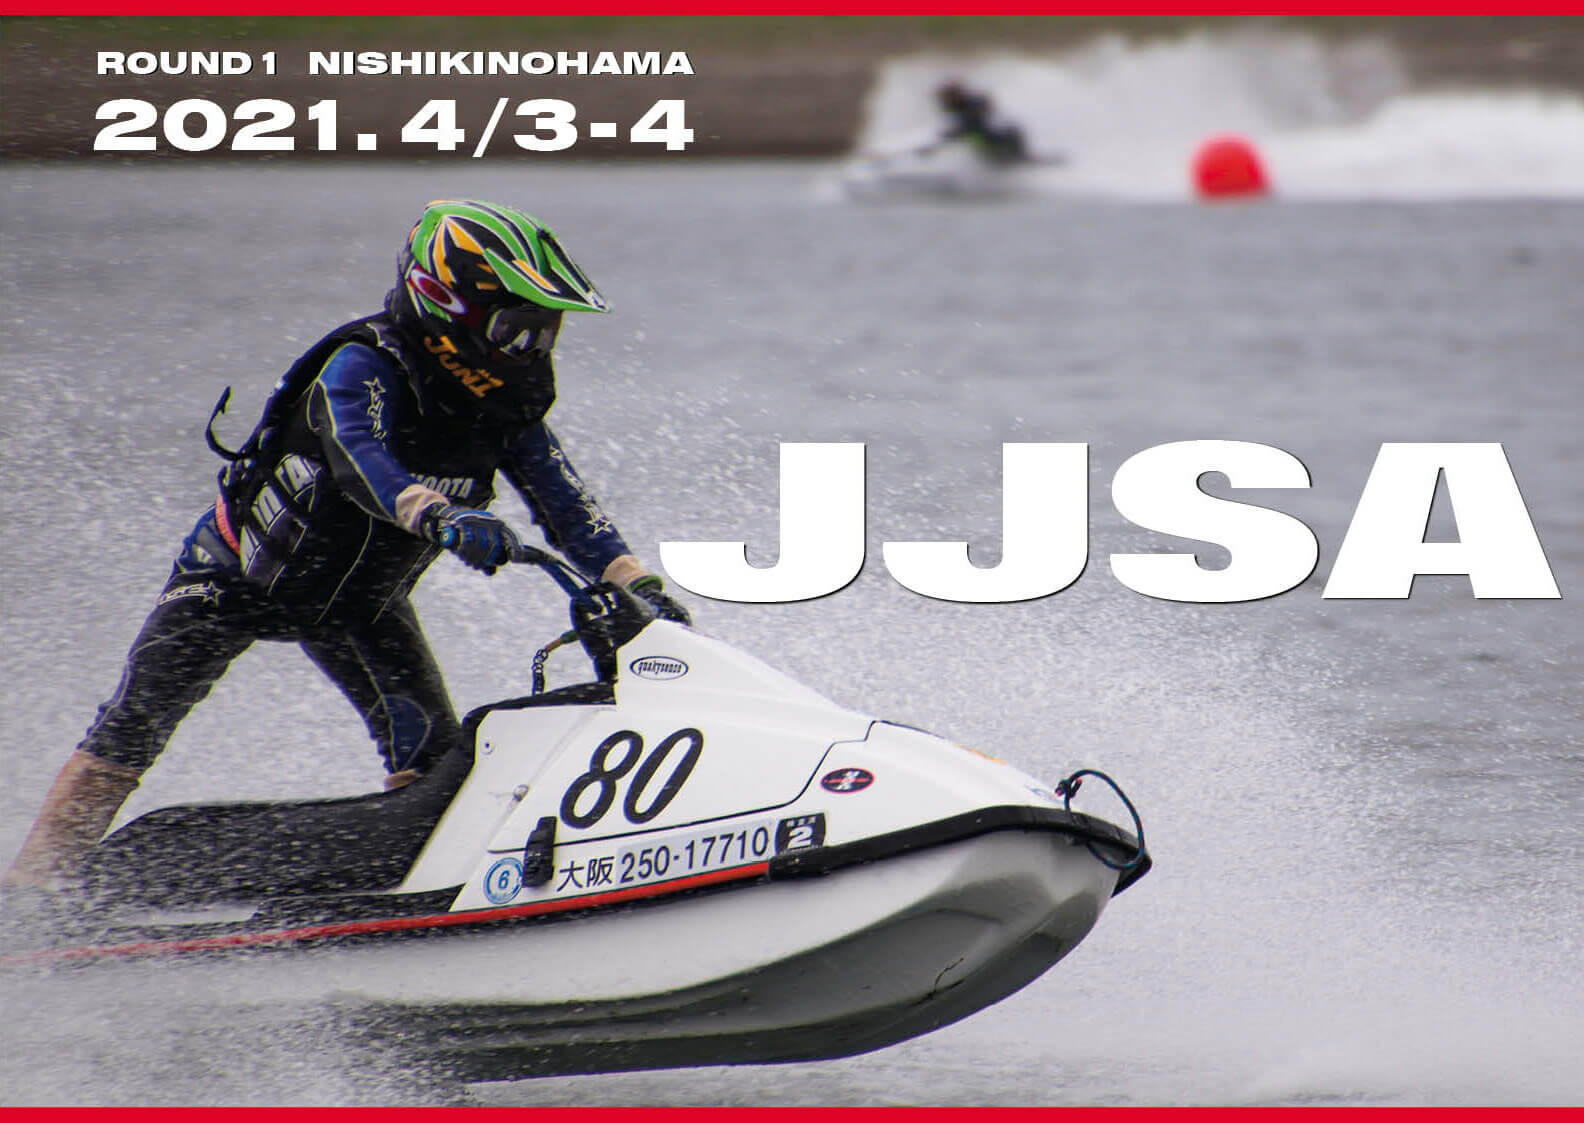 JJSA 「ALL JAPAN JET SPORTS SERIES 2021 1st STAGE」開幕戦の全レース結果 ジェットスキー(水上バイク)